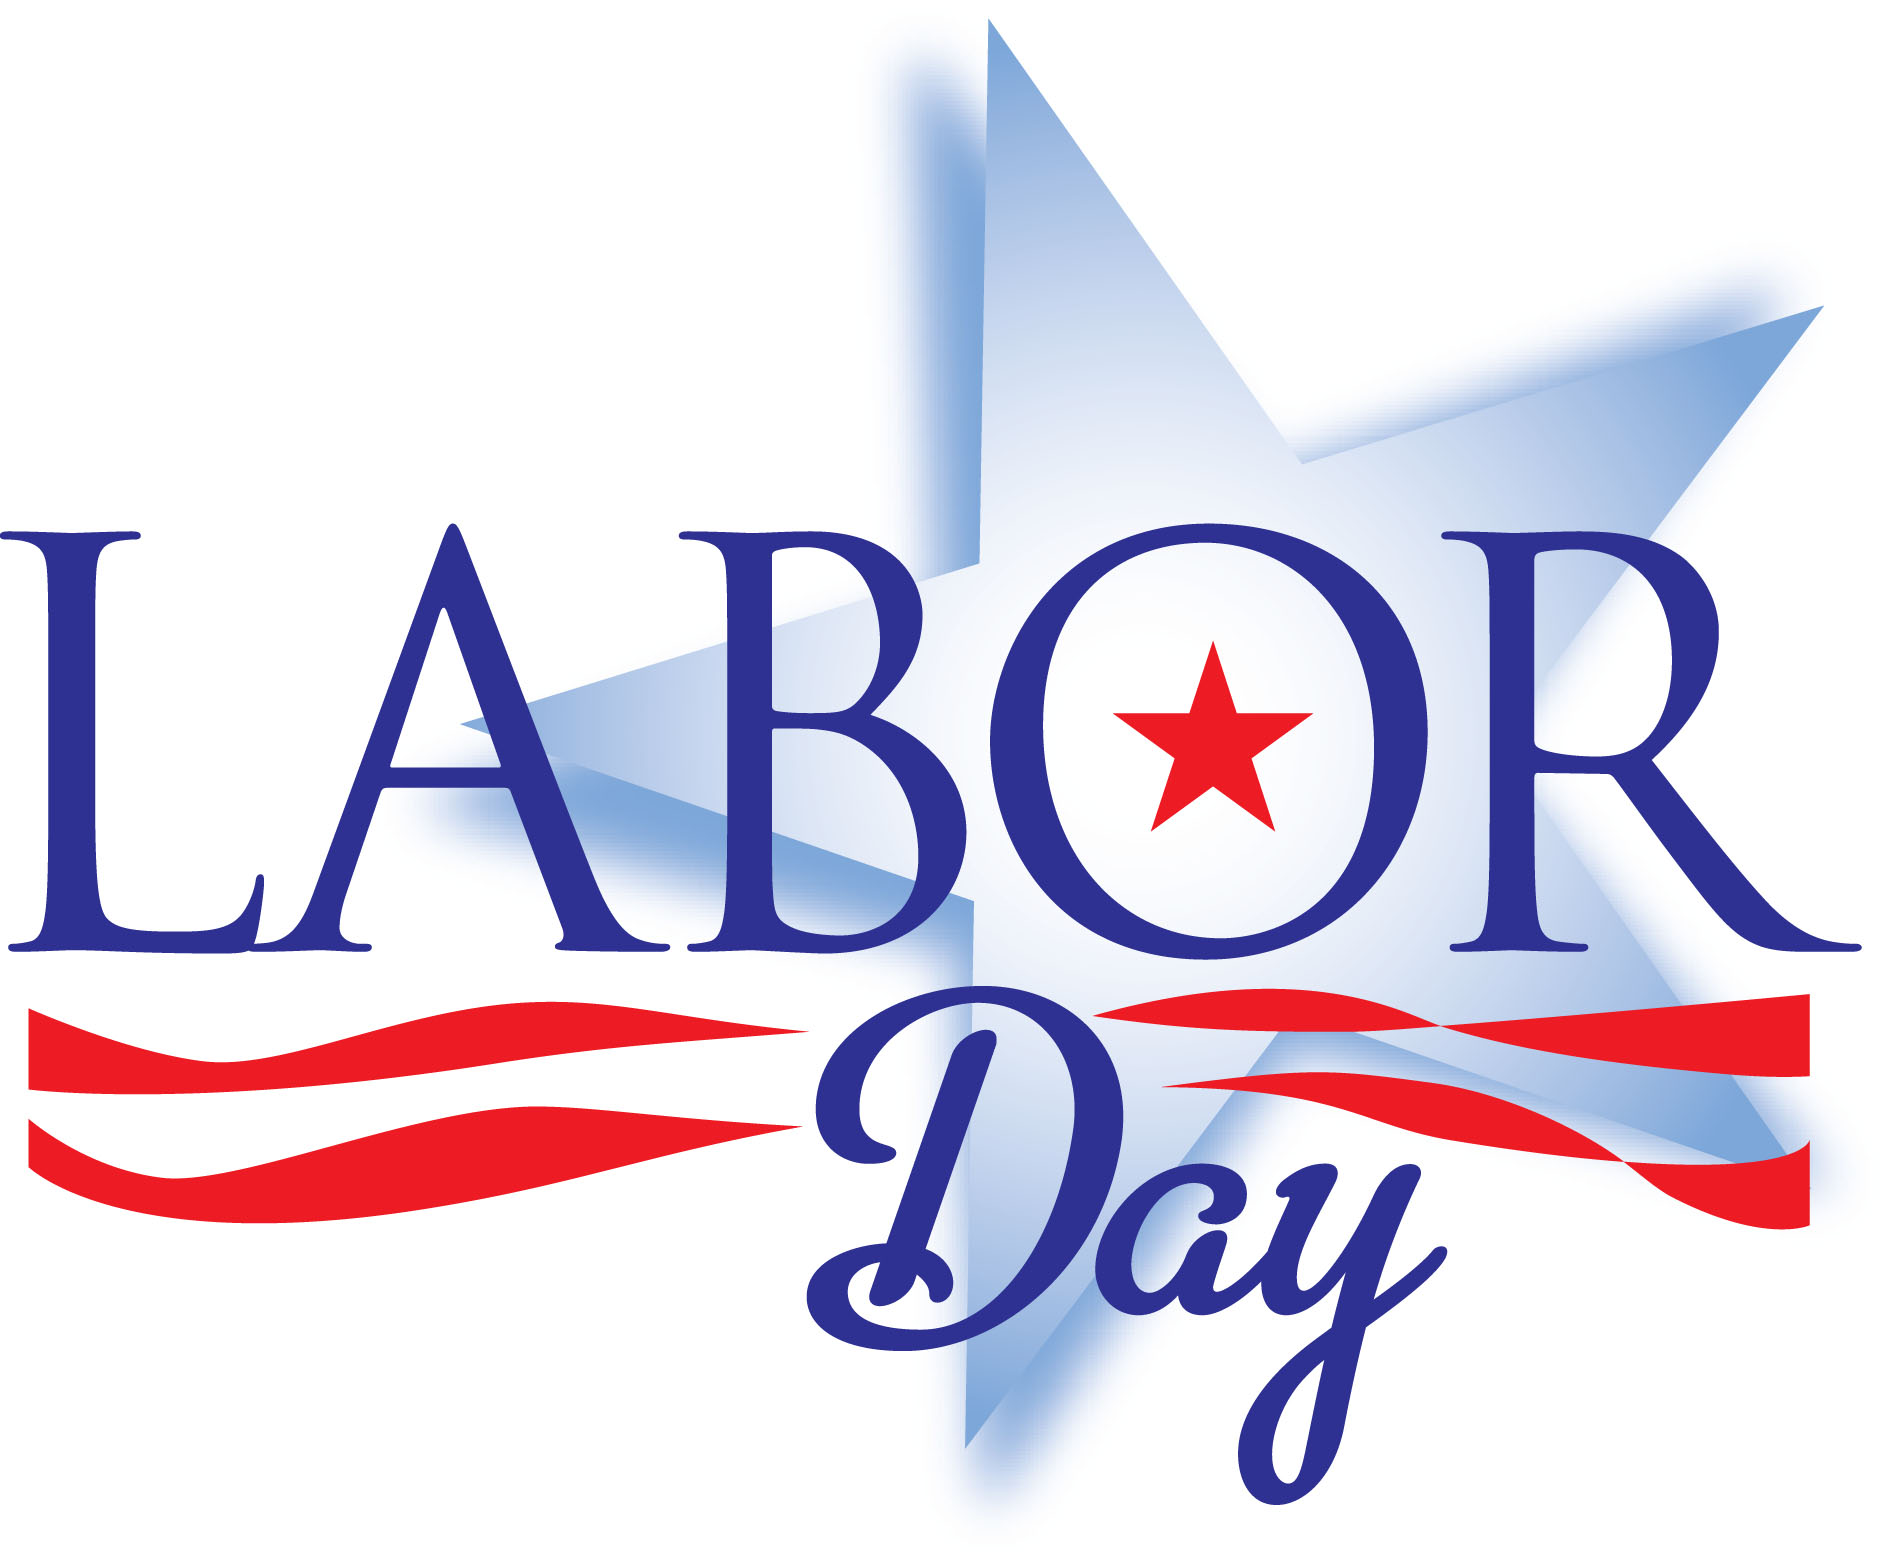 Labor Day Monday September 4th